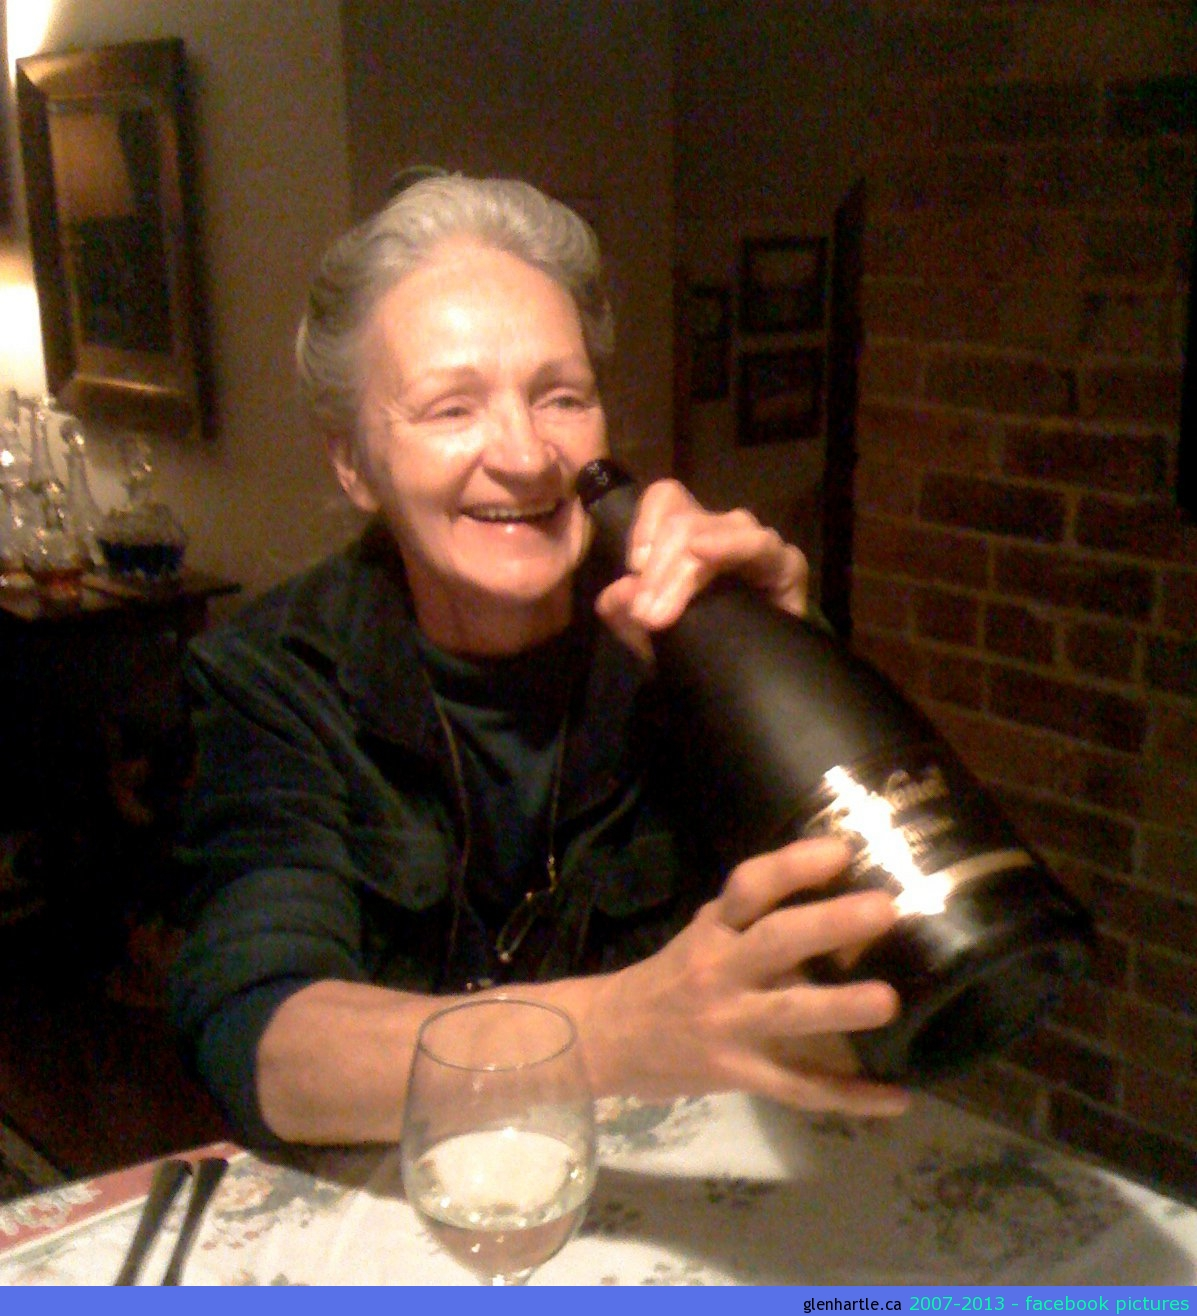 mom got RIGHT into the champagne…